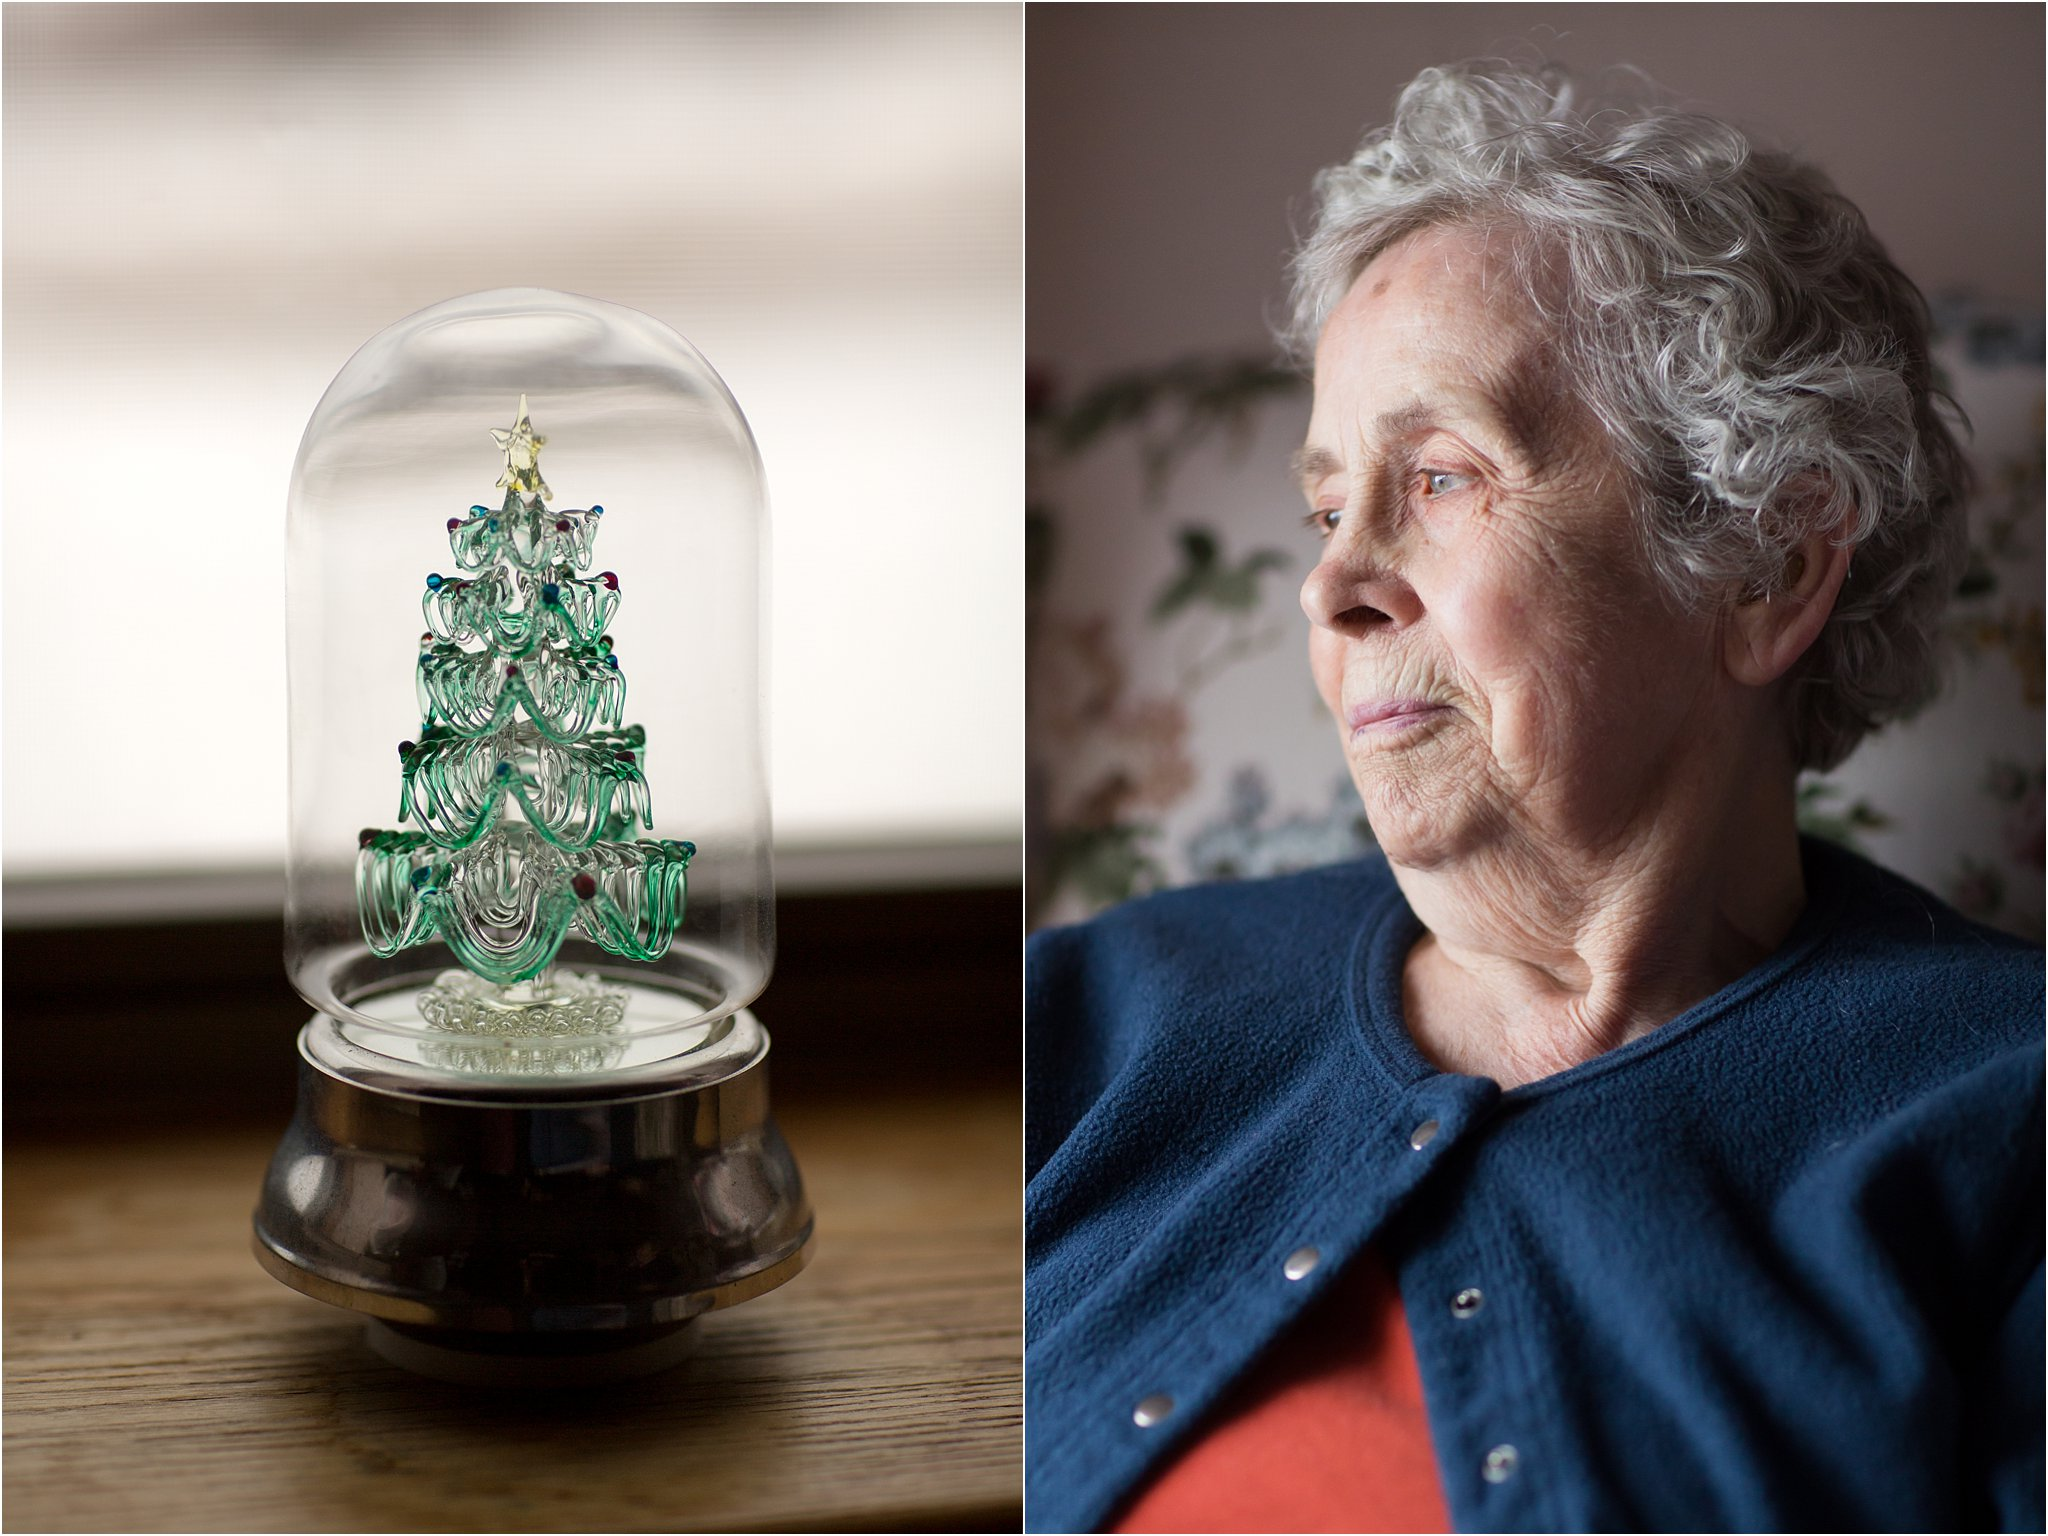 Portrait of Elderly Woman with Christmas Tree